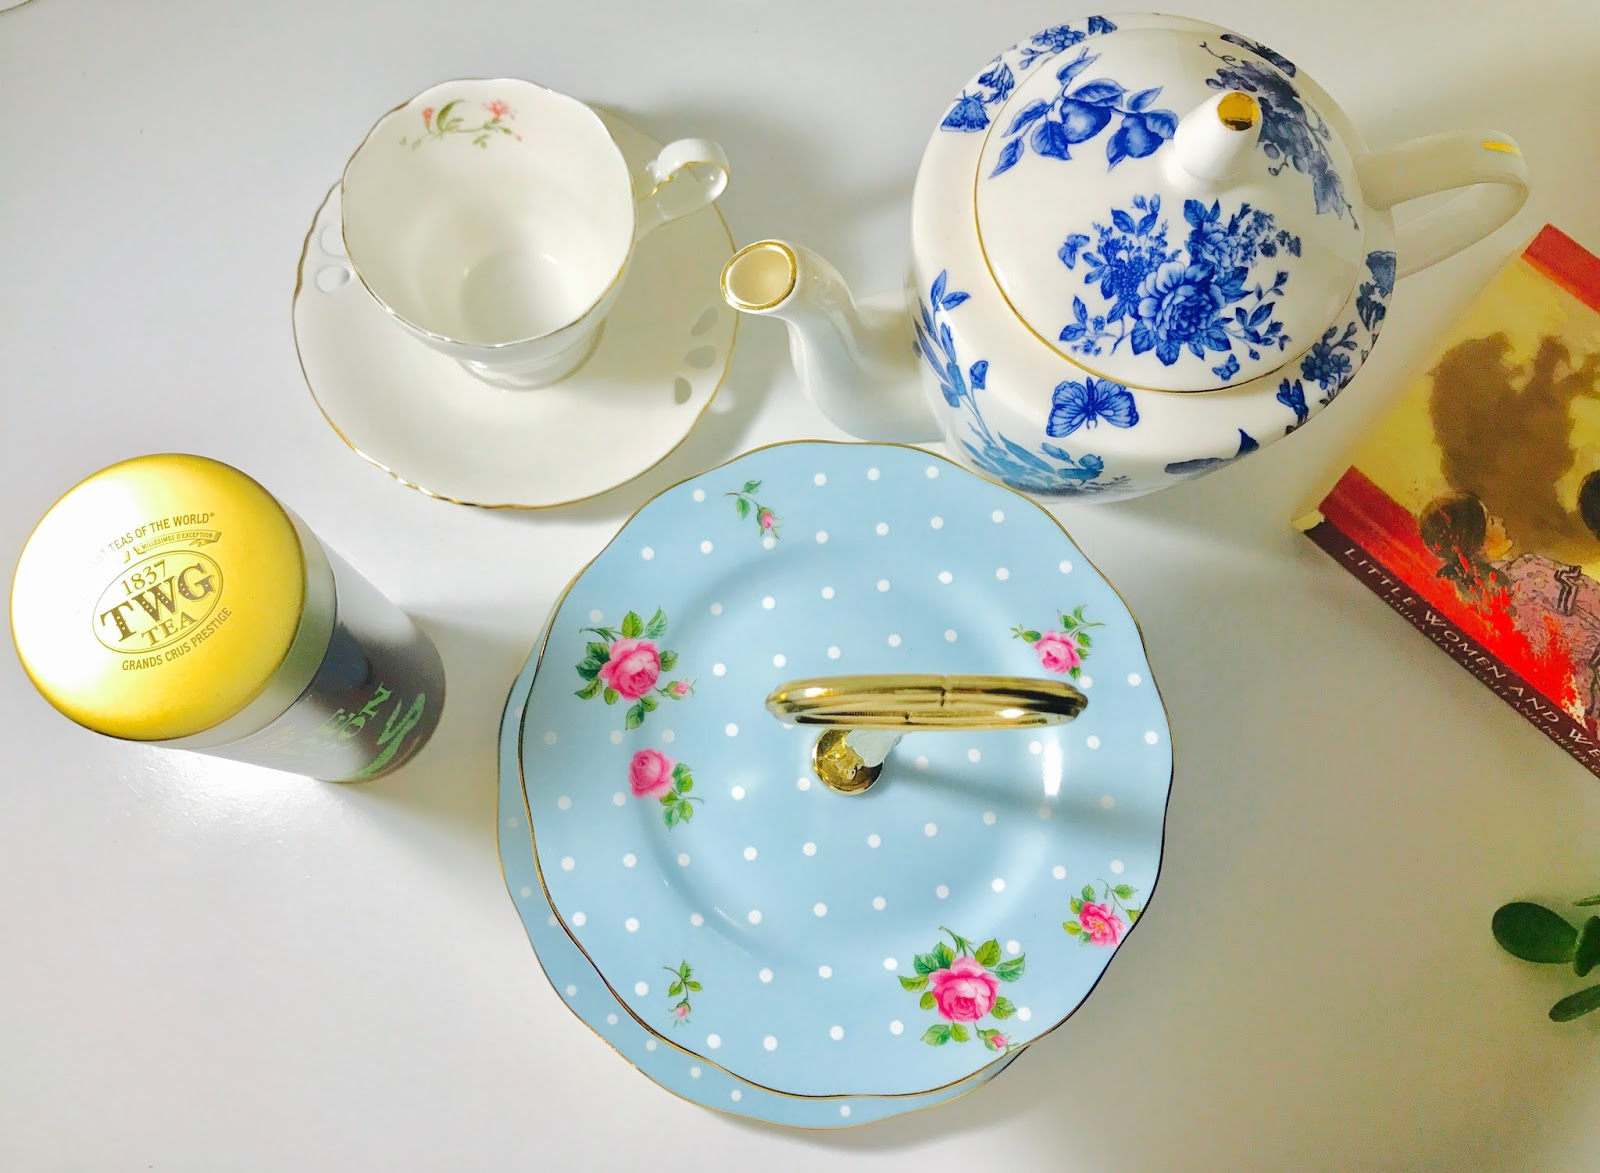 Happy tea time with TWG Tea from our Singapore trip Royal Albert Polka Blue 2-Tier Dessert stand and matching tea cups and tea pot. & ChicSassyMomFinds | Royal Stafford Dinnerware etc.